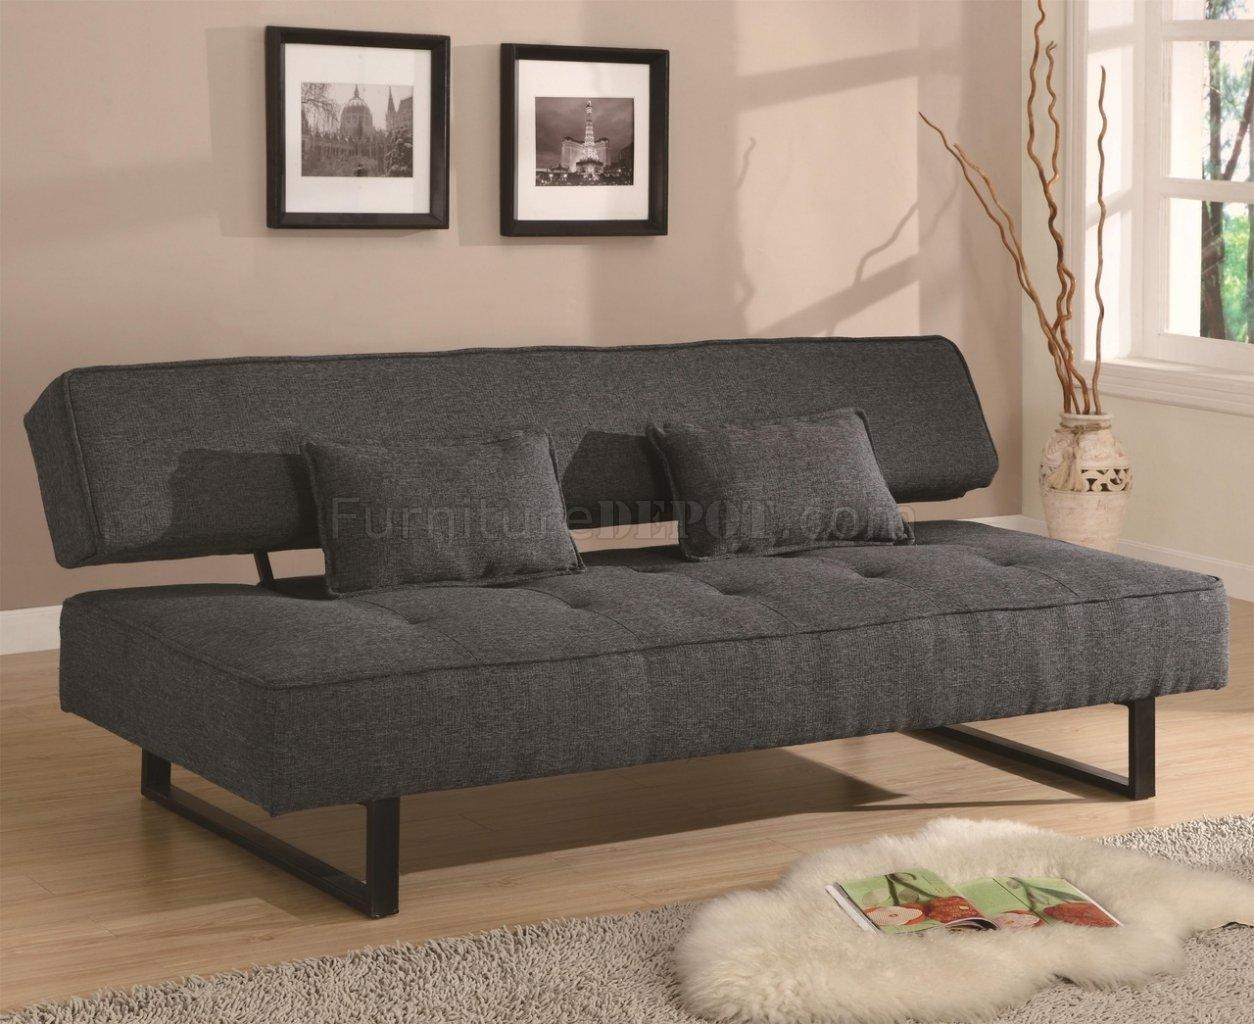 Chair Convertible Sofa Chair Bed Convertible Sofa Chair Bed For Convertible Sofa Chair Bed (View 10 of 20)